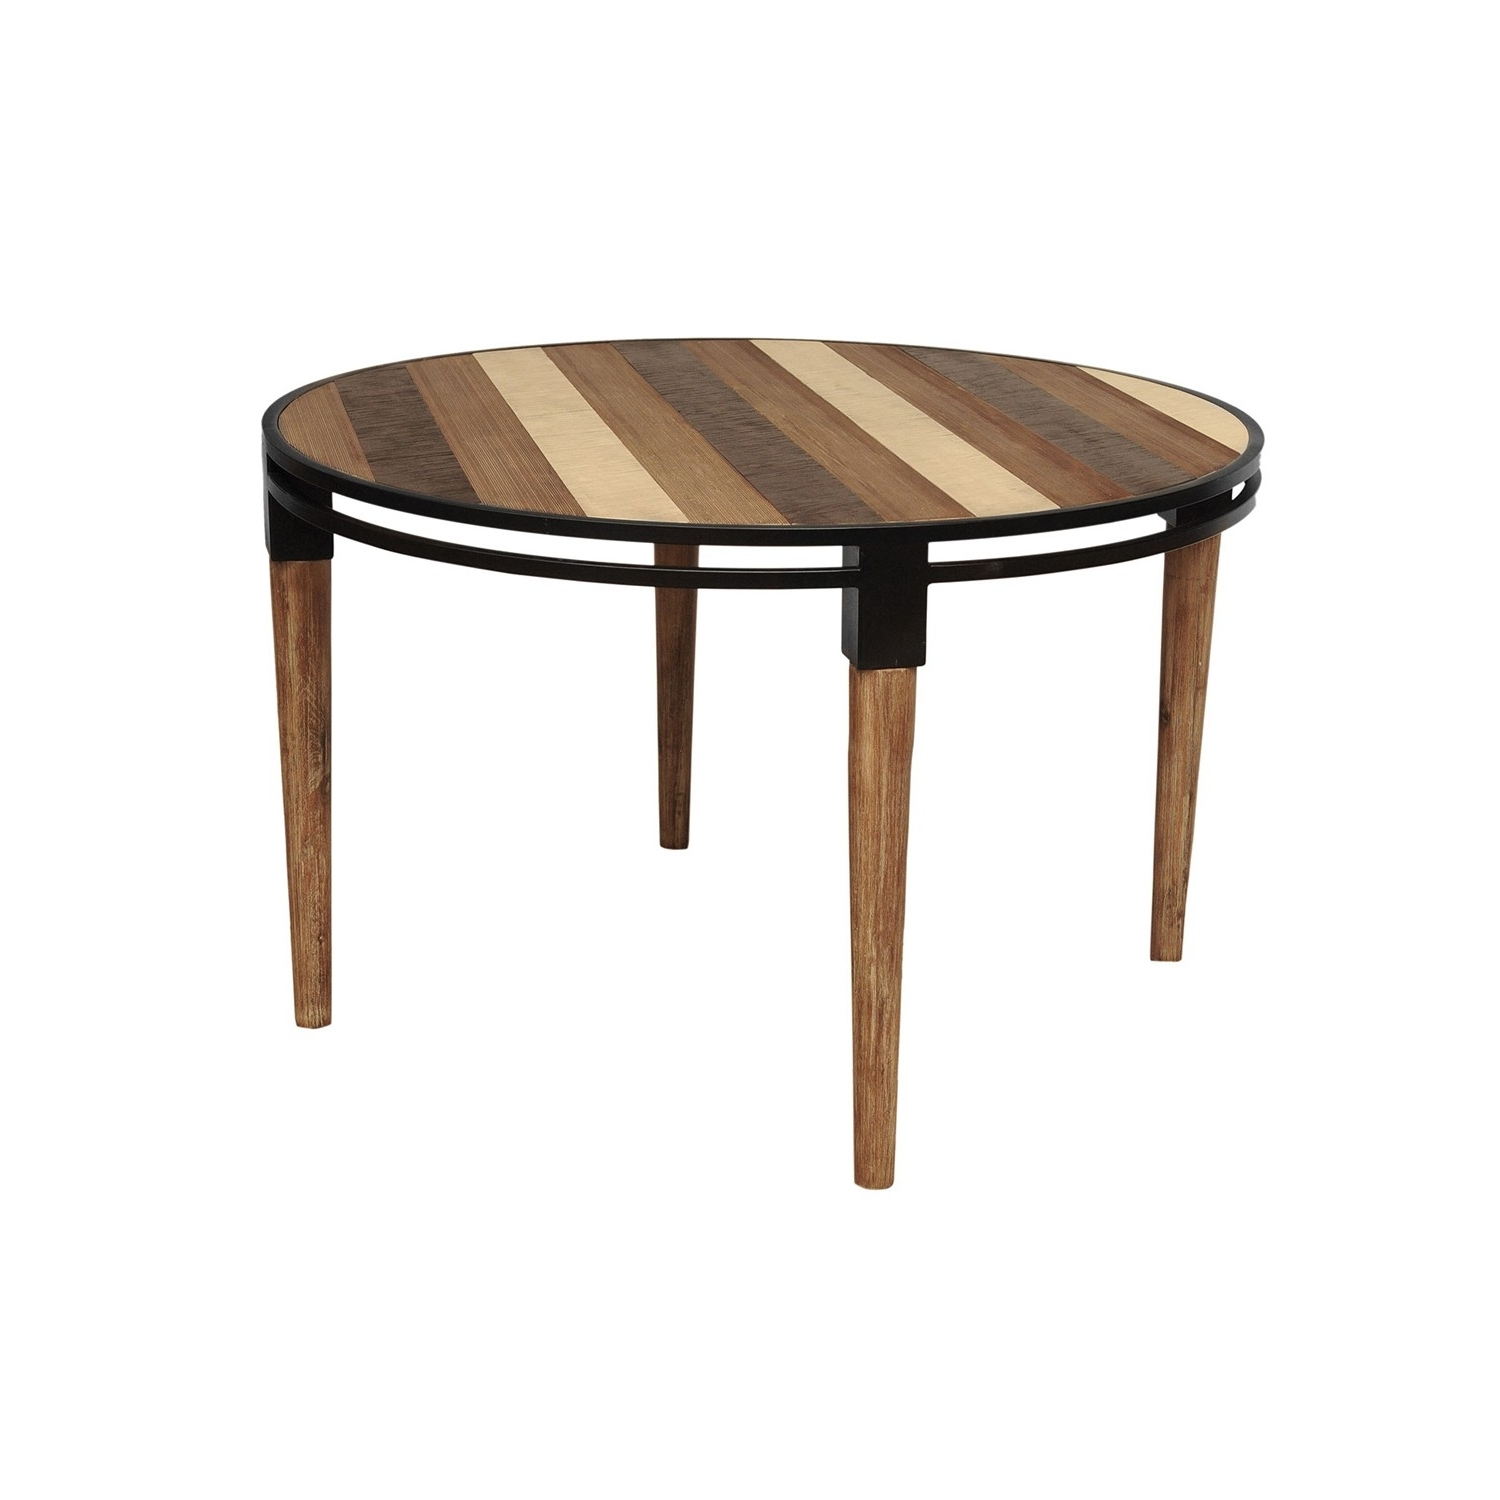 Medley Round Dining Table Acacia Wood Metal Base 48*48*30 – Td1283 Inside Best And Newest Acacia Dining Tables (View 19 of 25)